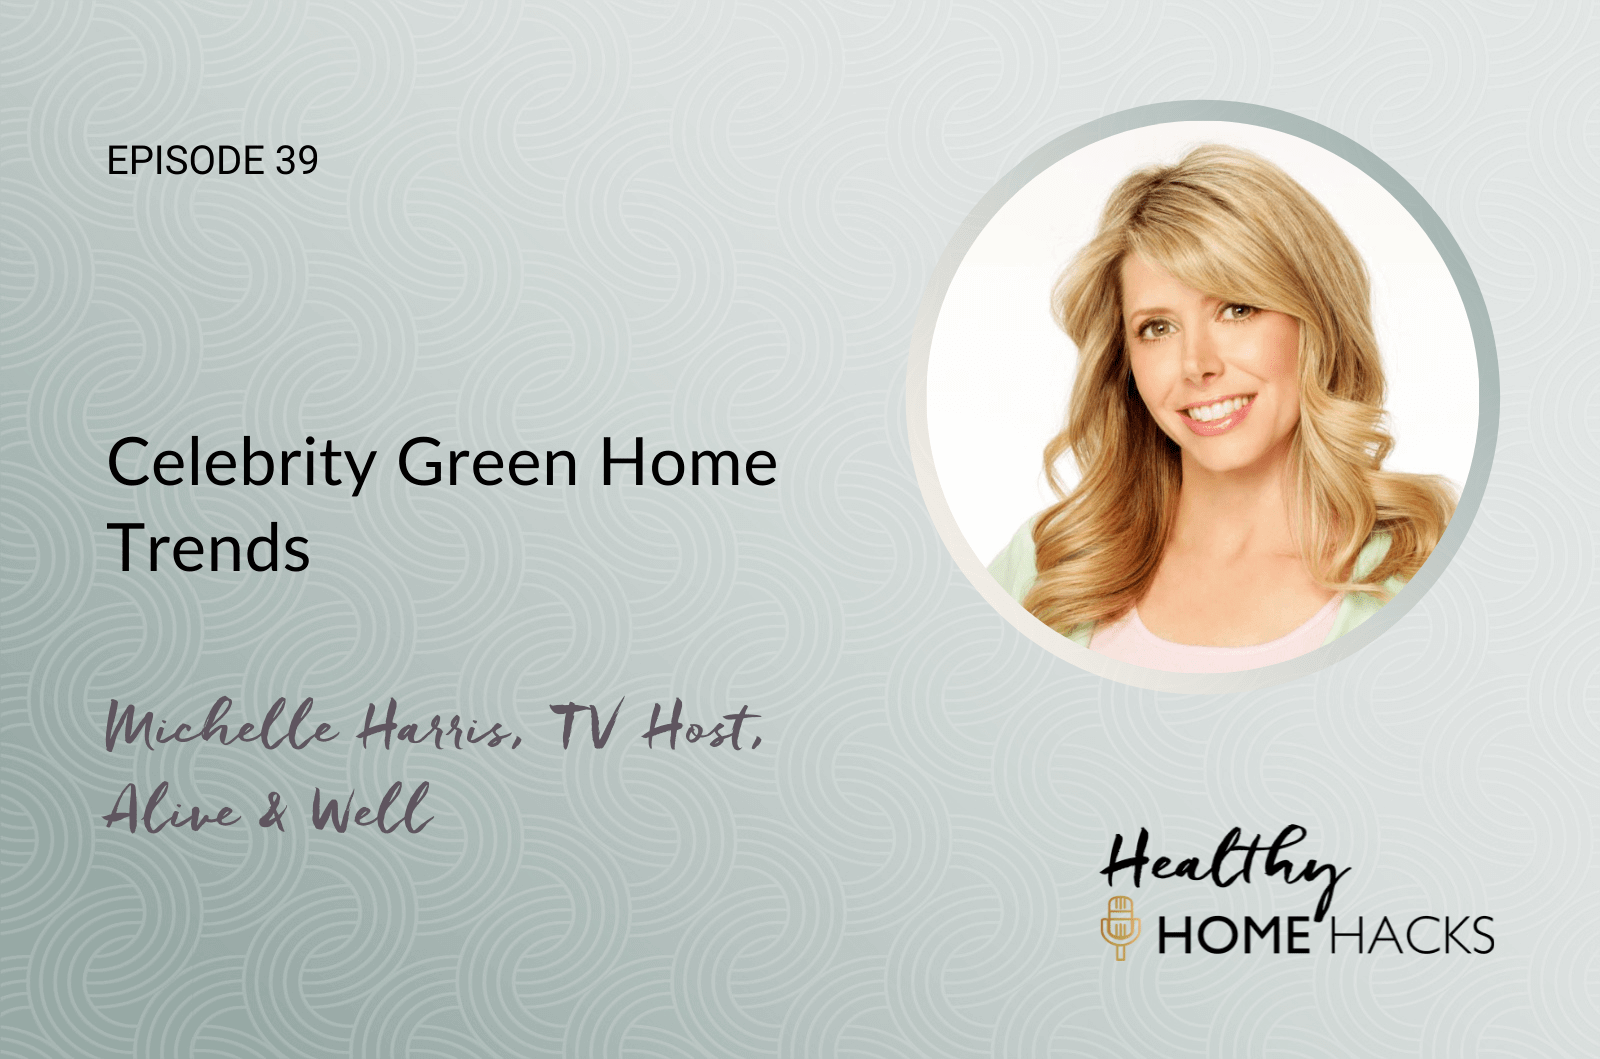 Celebrity Green Home Trends